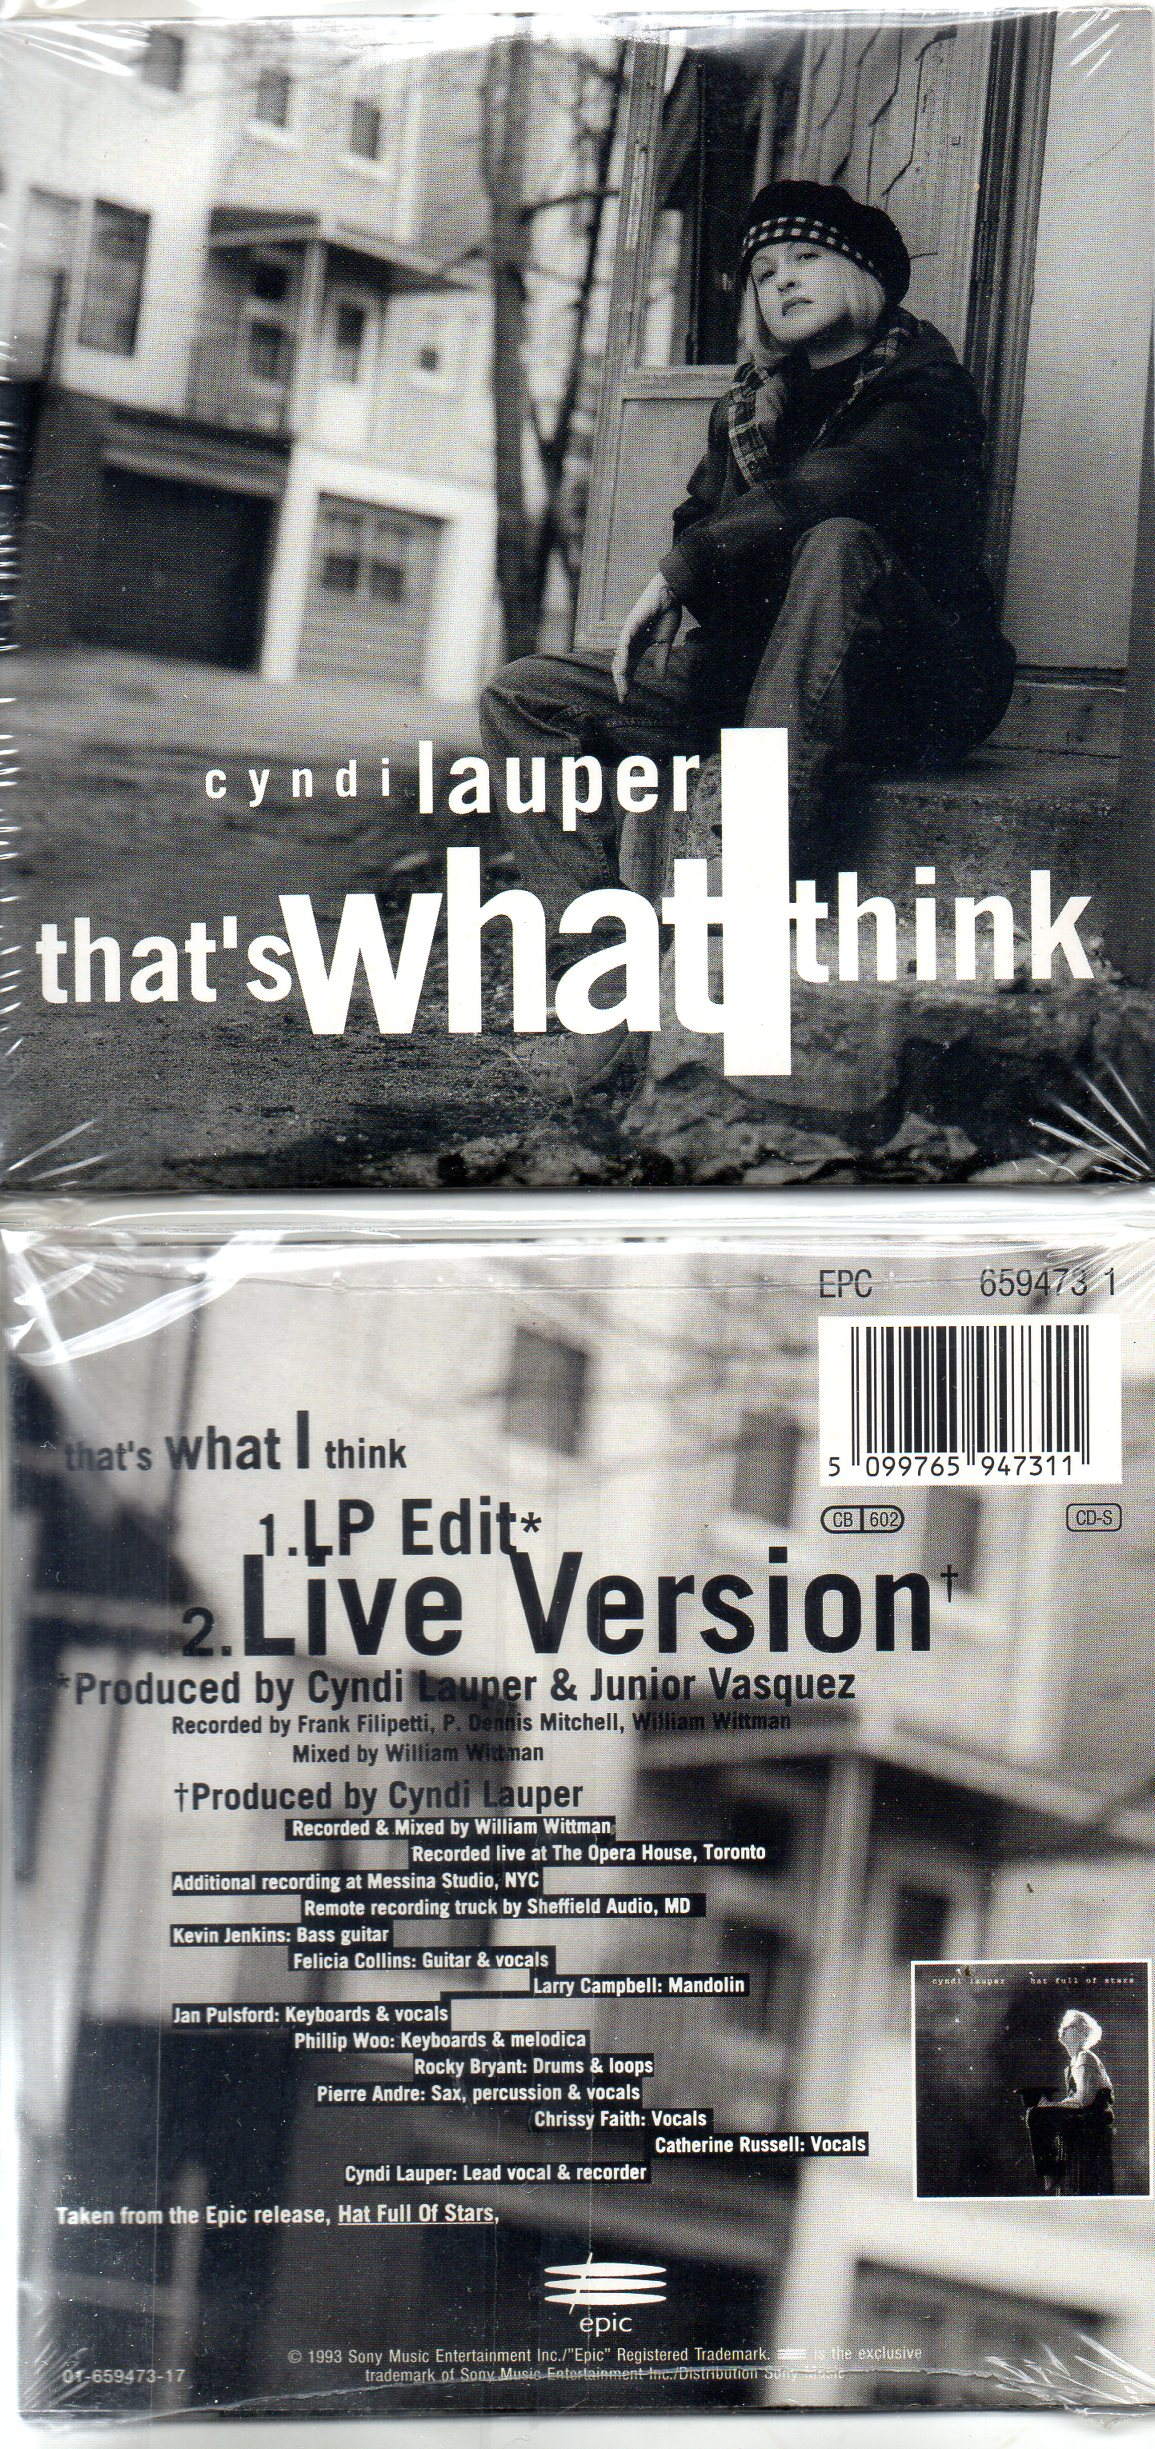 Cyndi LAUPER - That's What I Think 2-track Card Sleeve